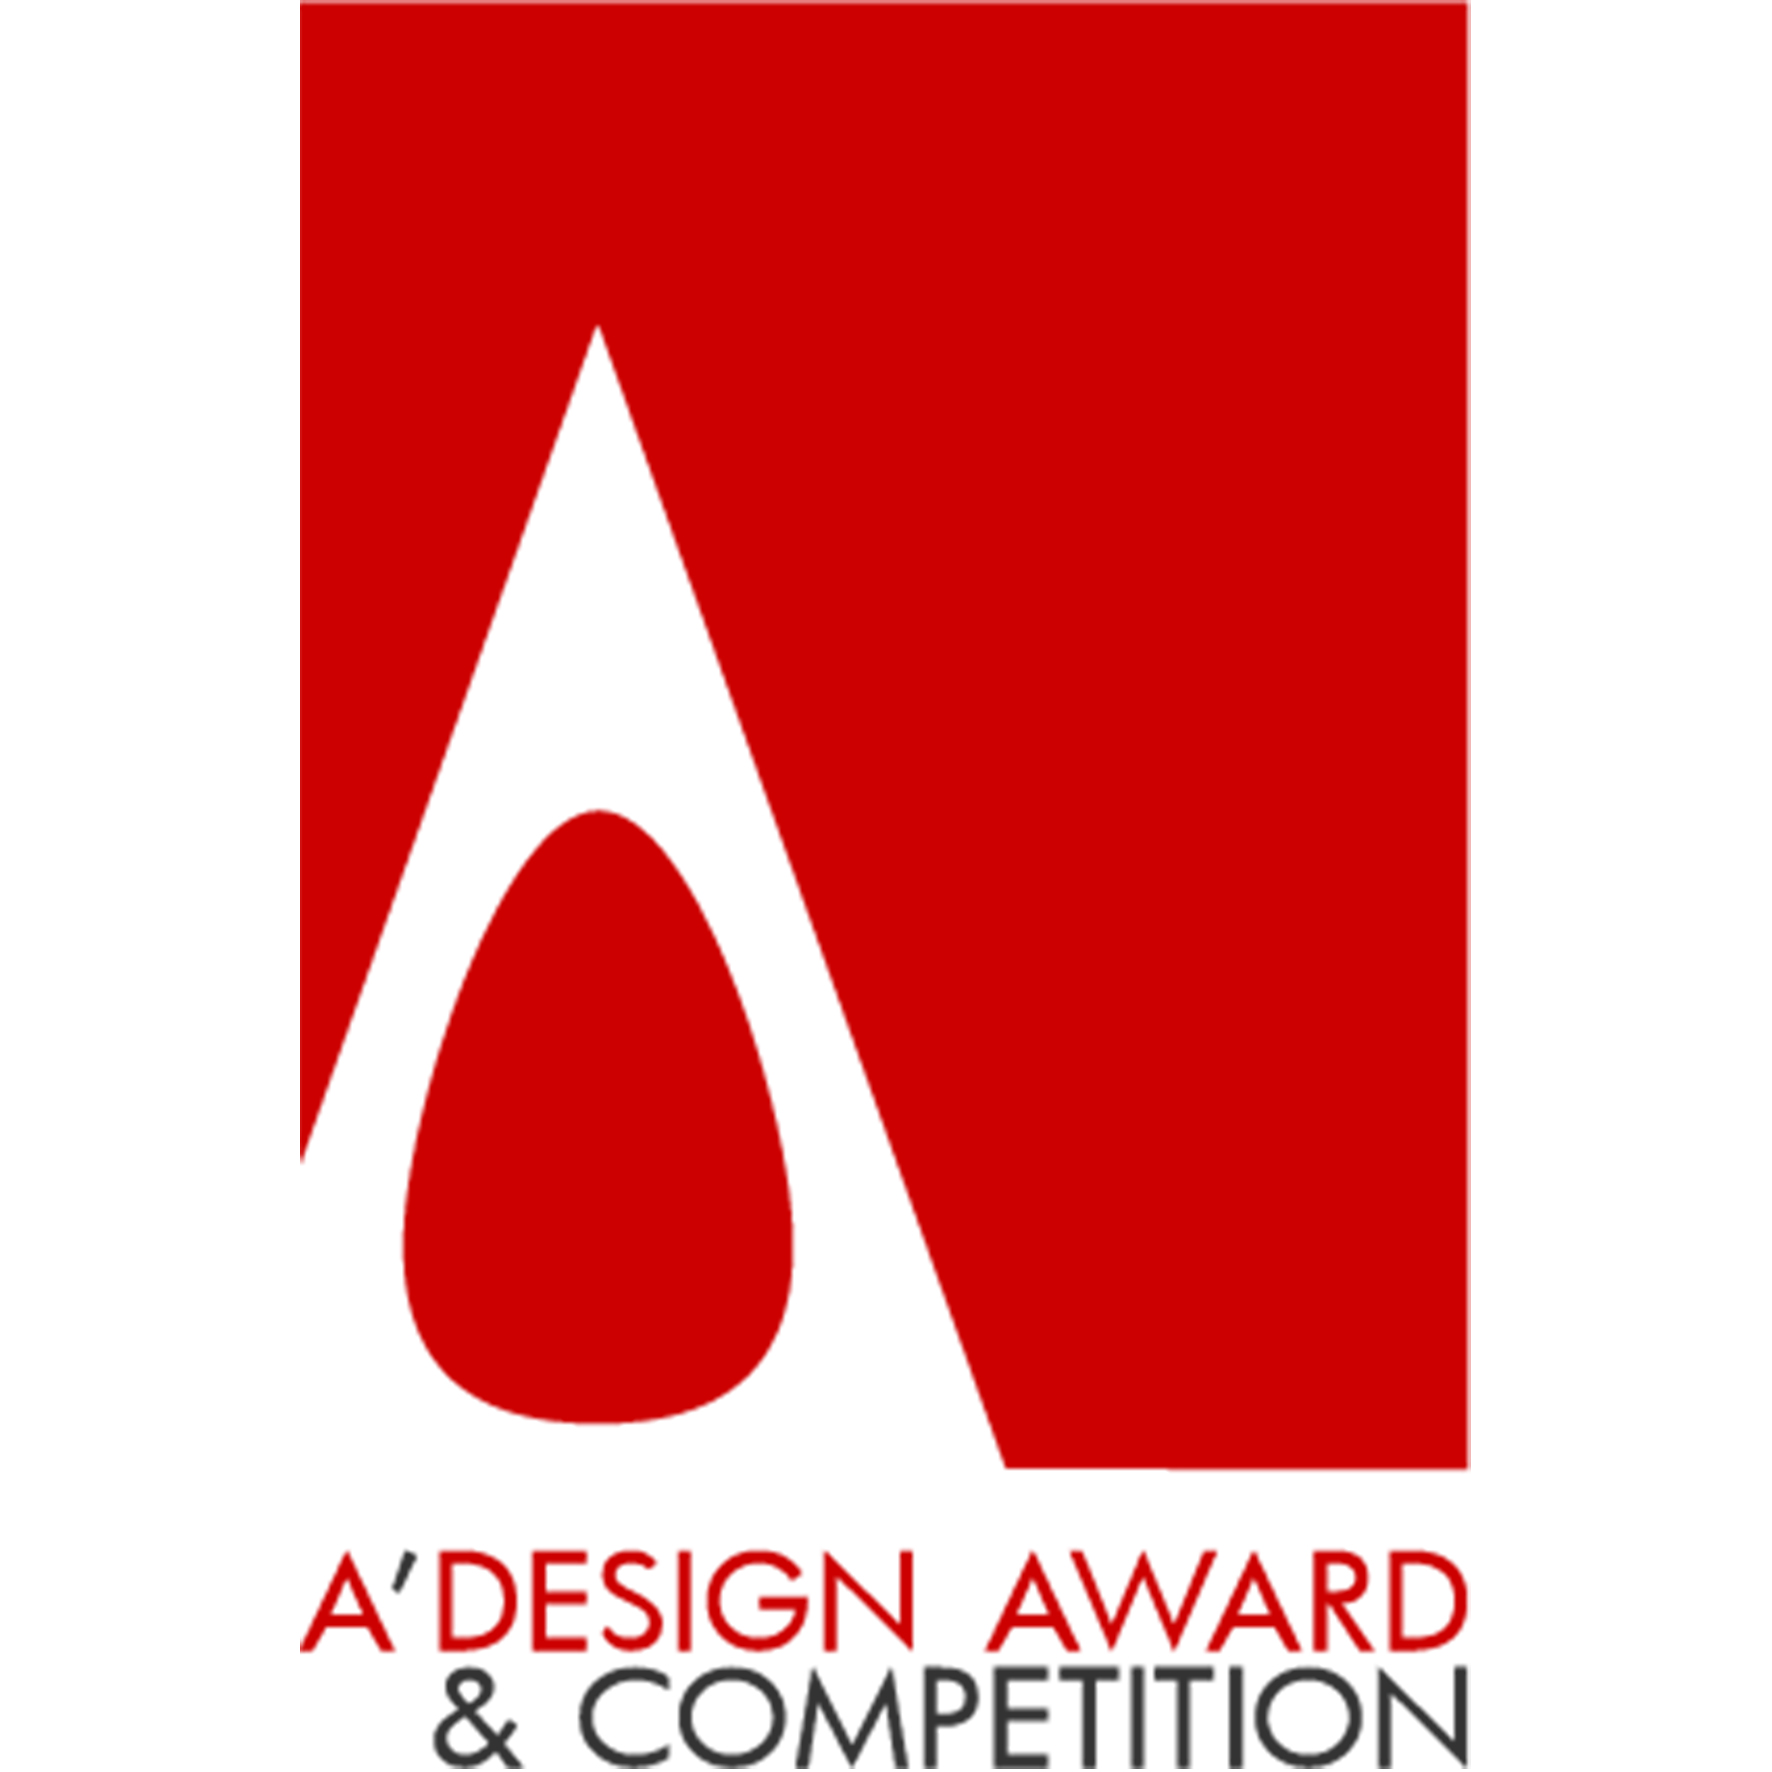 2016-2017 A' Design Award – Silver in Event & Happening Design Category